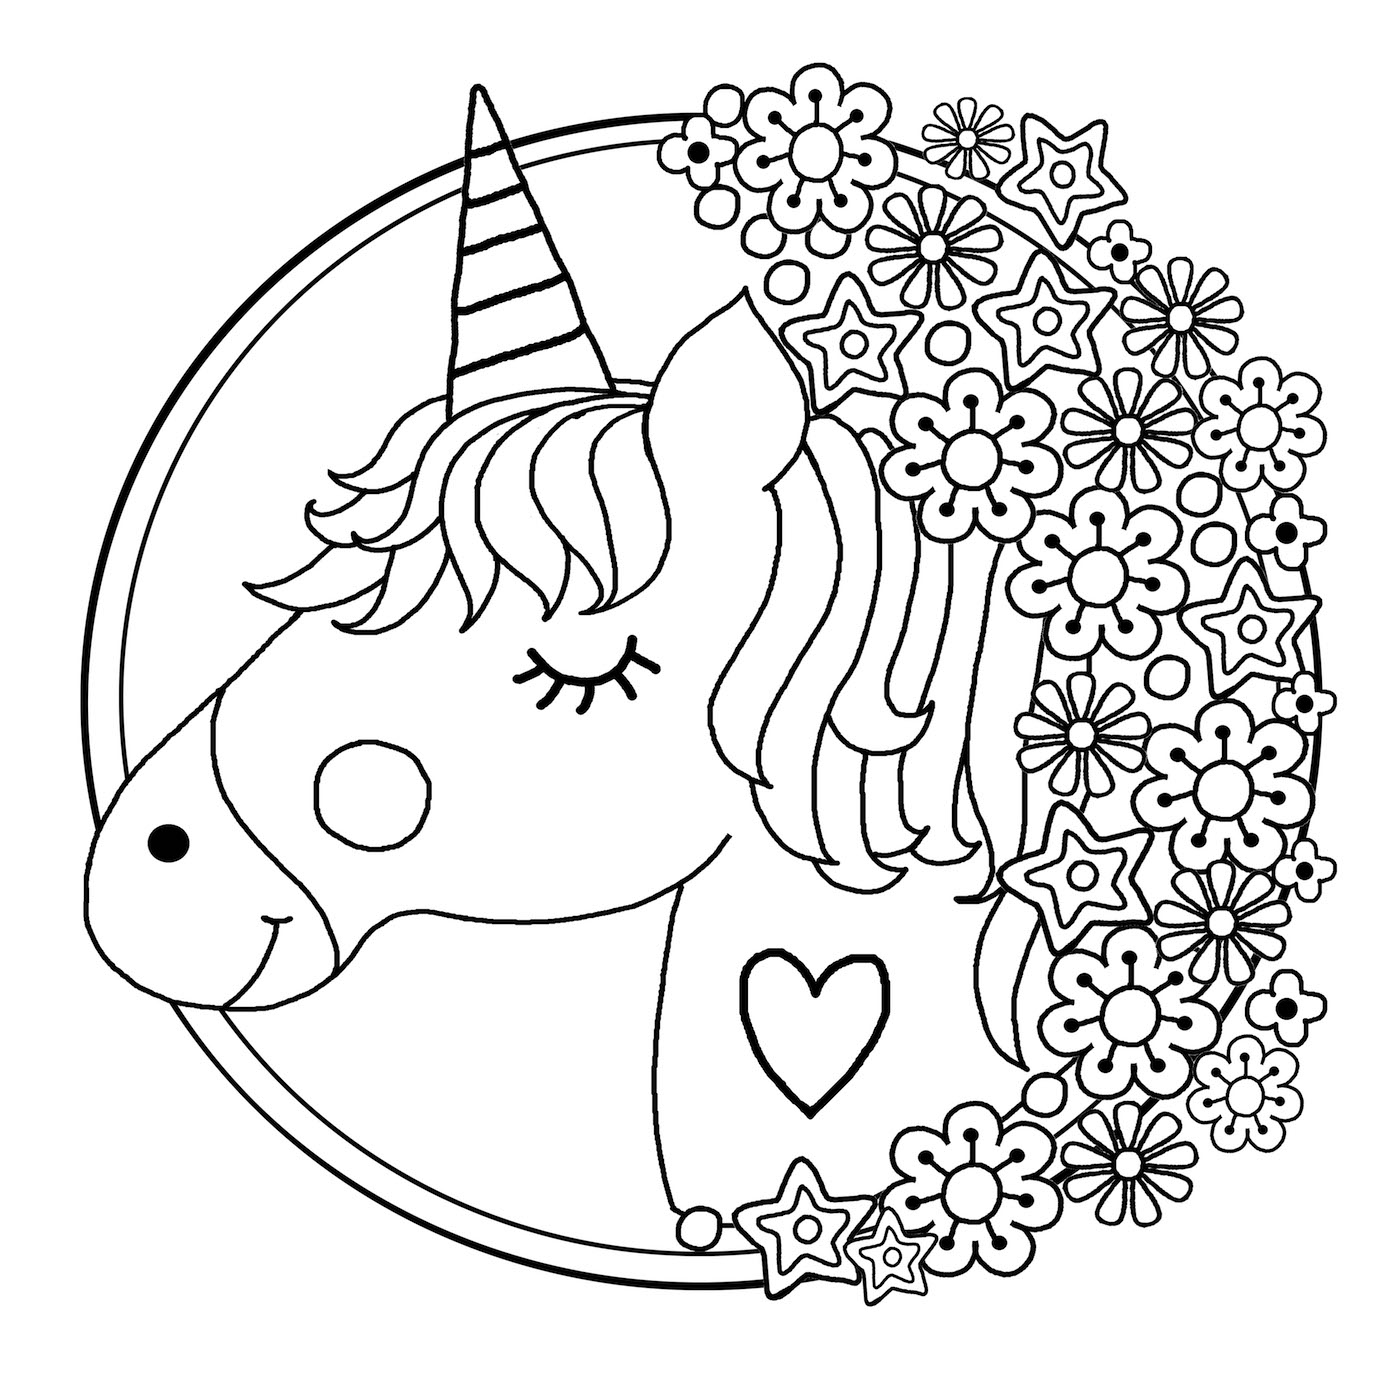 Downloadable unicorn colouring page - Michael O'Mara Books